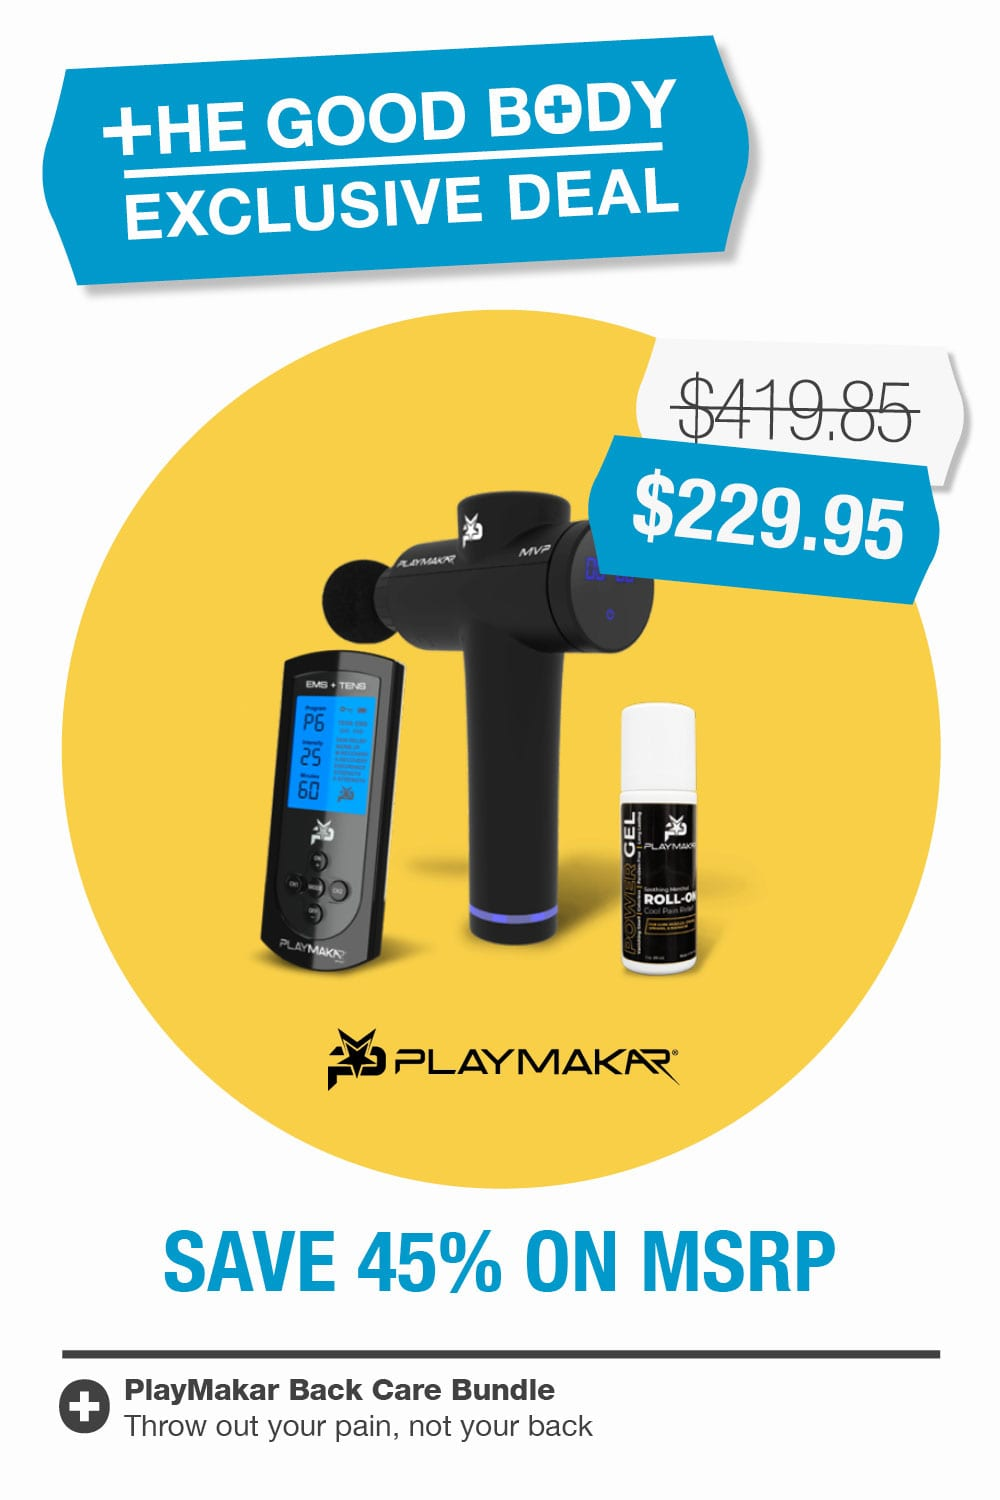 PlayMakar Back Care Bundle – Exclusive to The Good Body